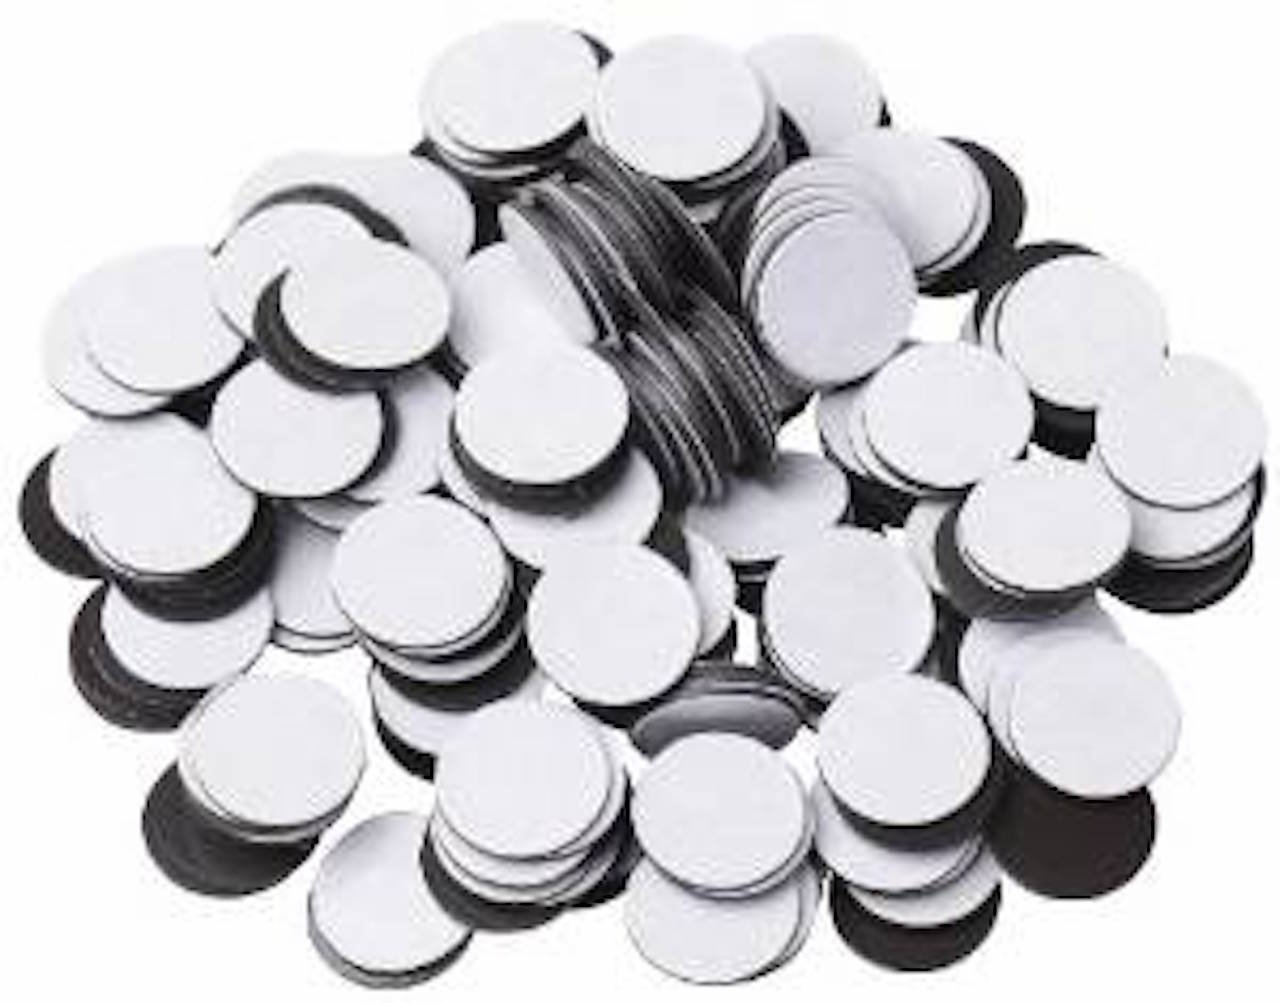 100 Round Self Adhesive Magnetic Circles .5 Diameter 4 mil Magnets Arts and Crafts School Magnet Dot Tape New Cute Self-adhesive Darice 4336847766